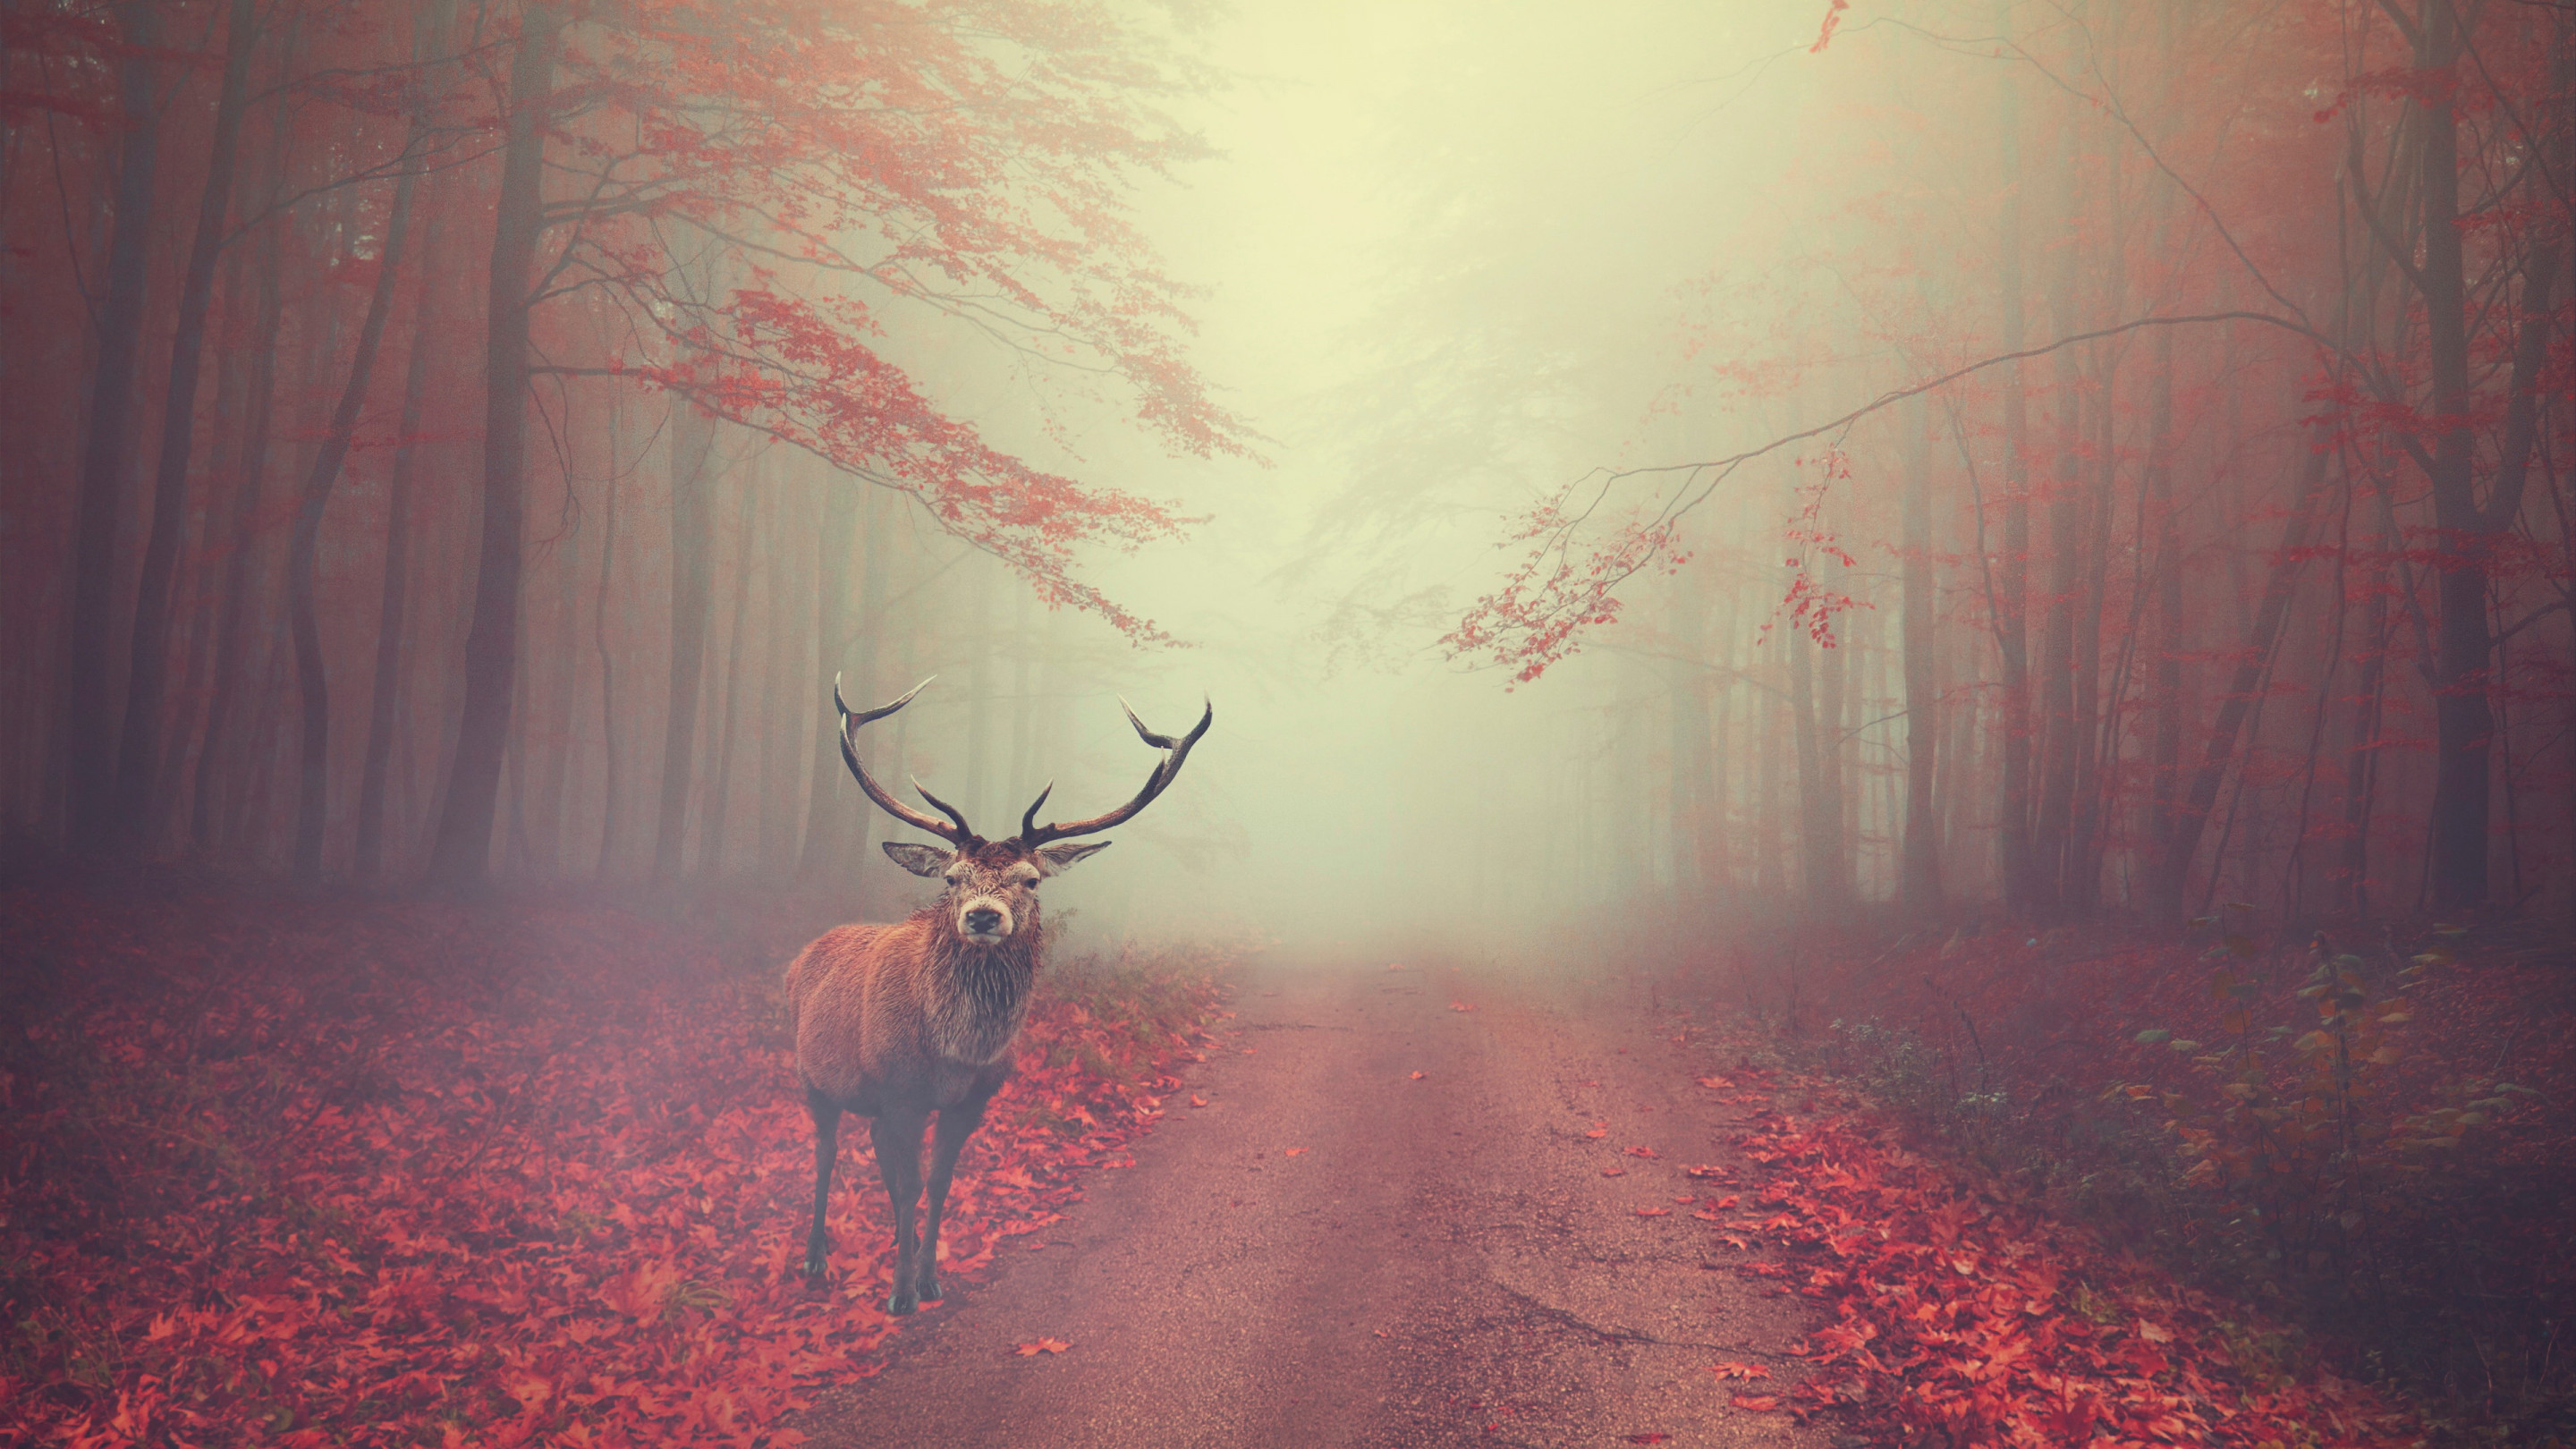 Beautiful stag in the Autumn landscape wallpaper 2880x1620